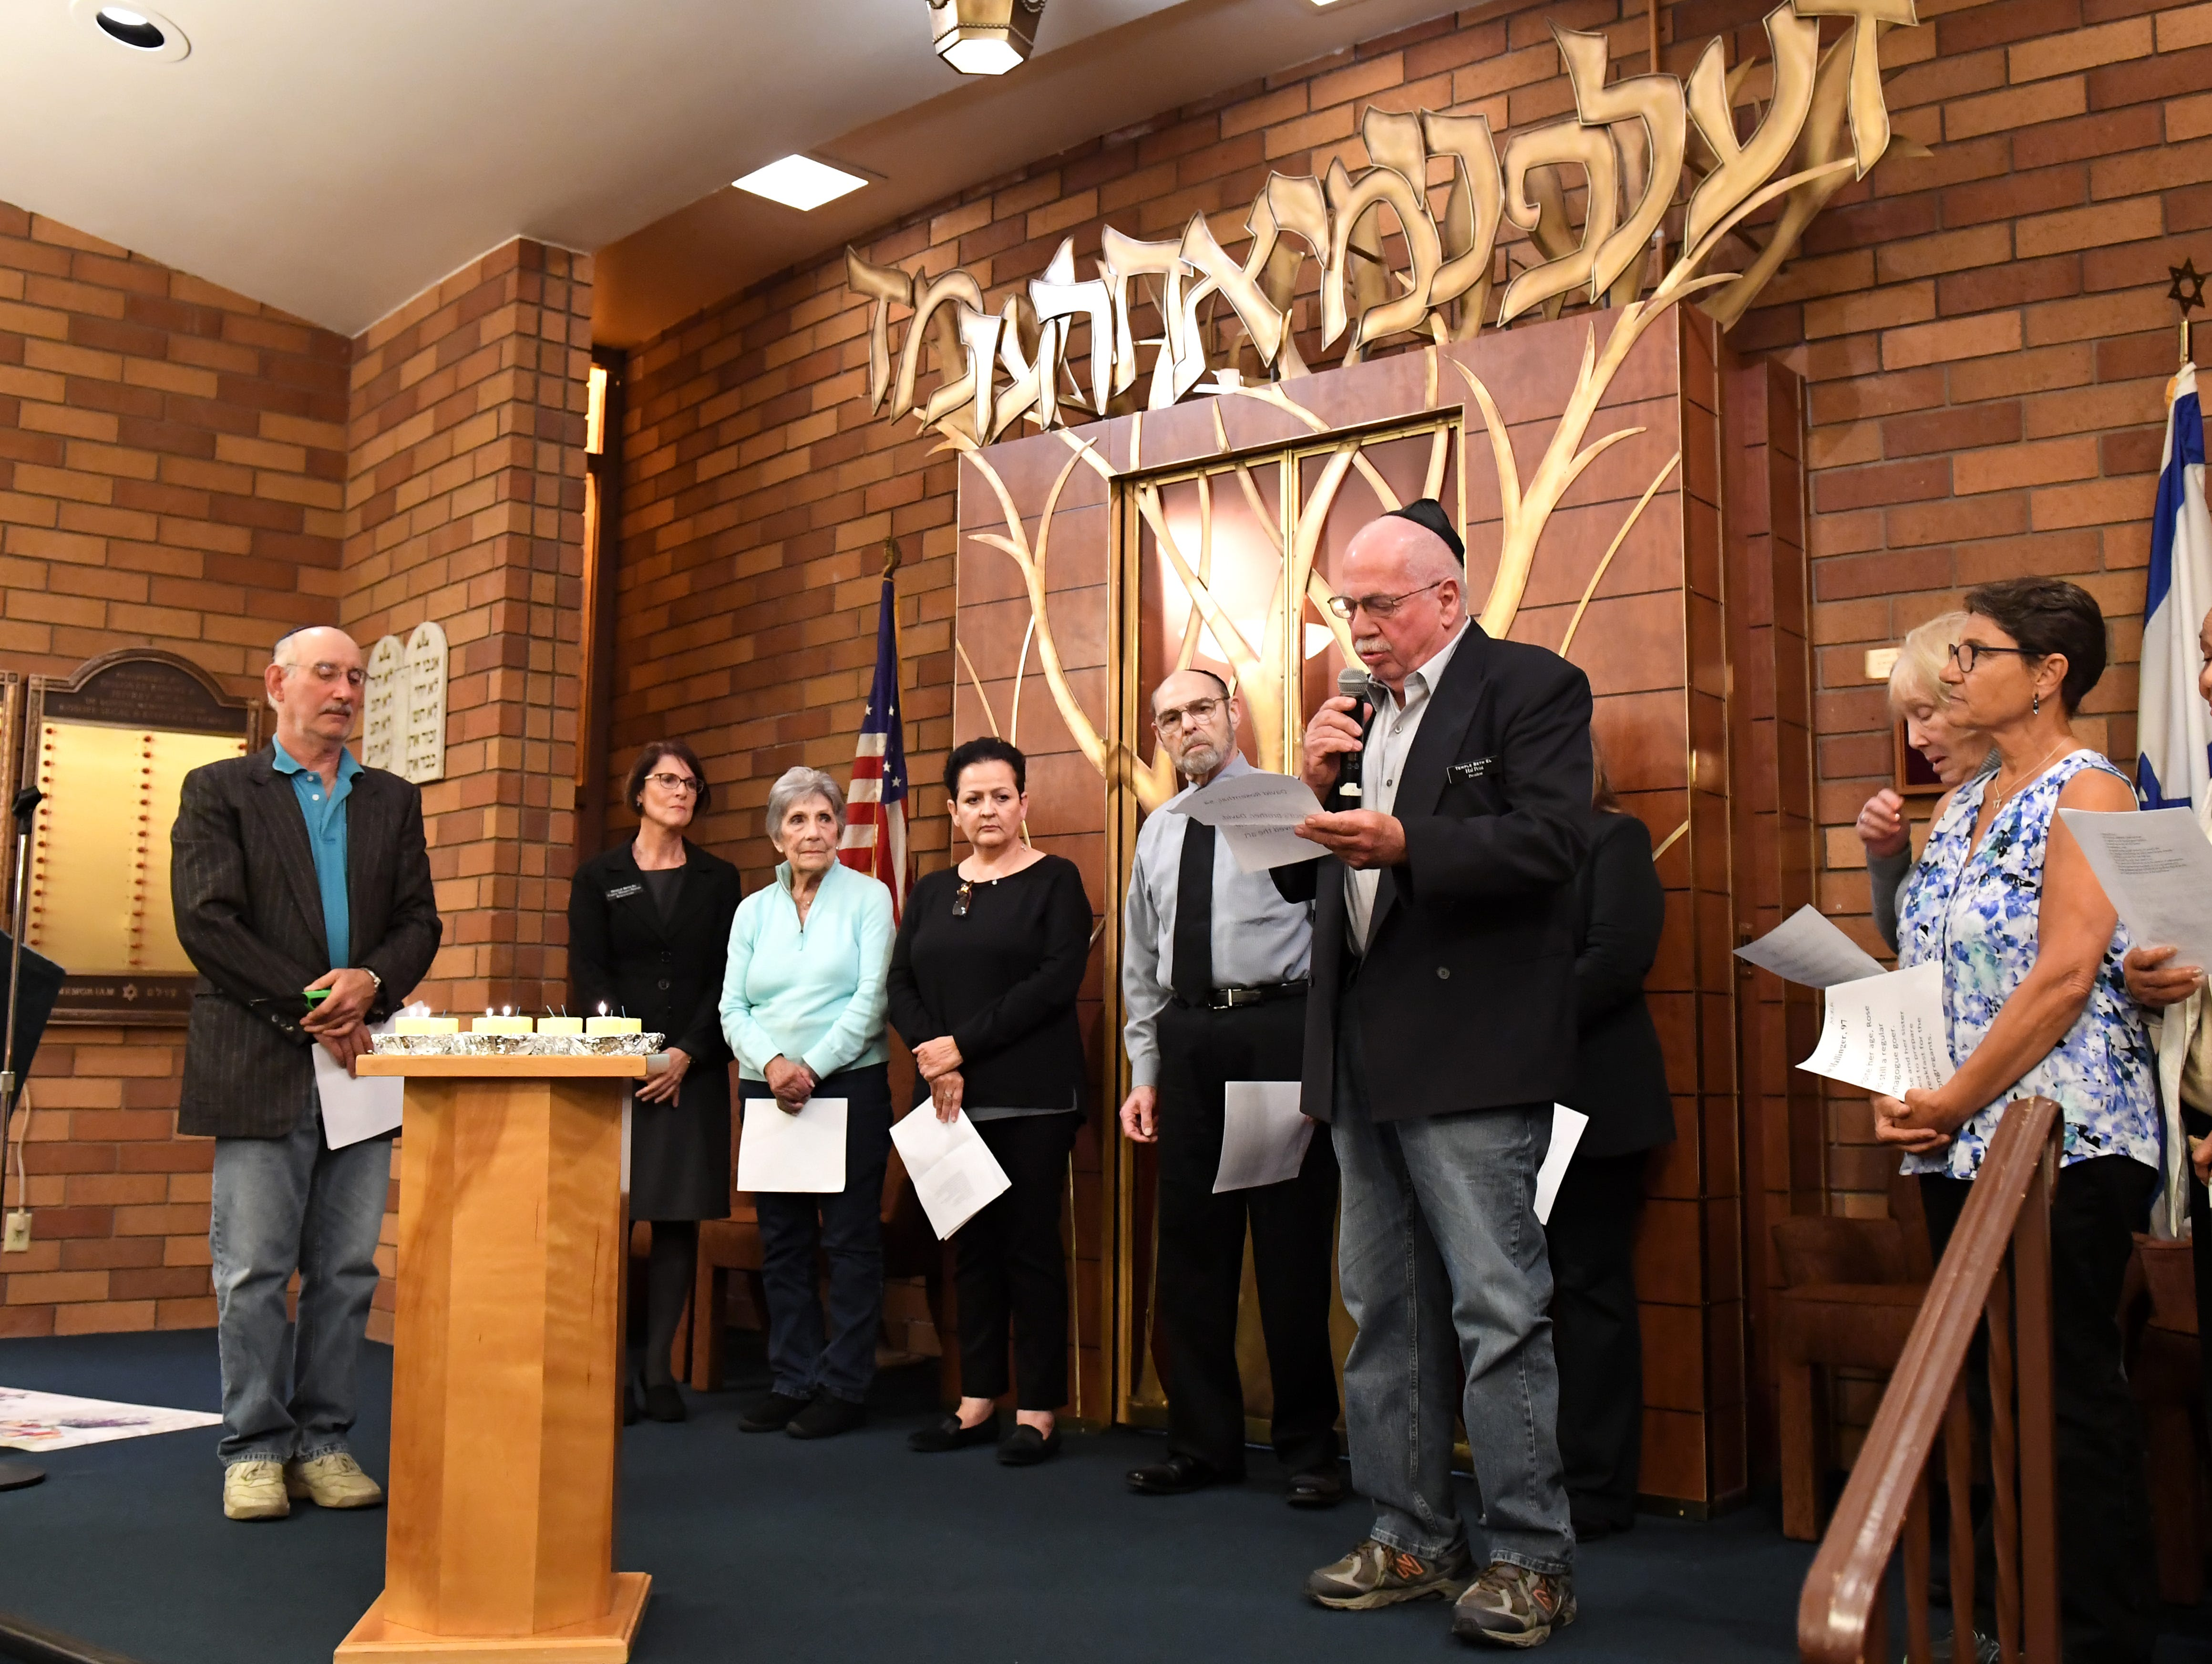 Temple President Hal Peist steps forward to help read the names of each person killed in the Pittsburgh synagogue shooting were read aloud during a special gathering Monday night at Temple Beth El in Salinas.